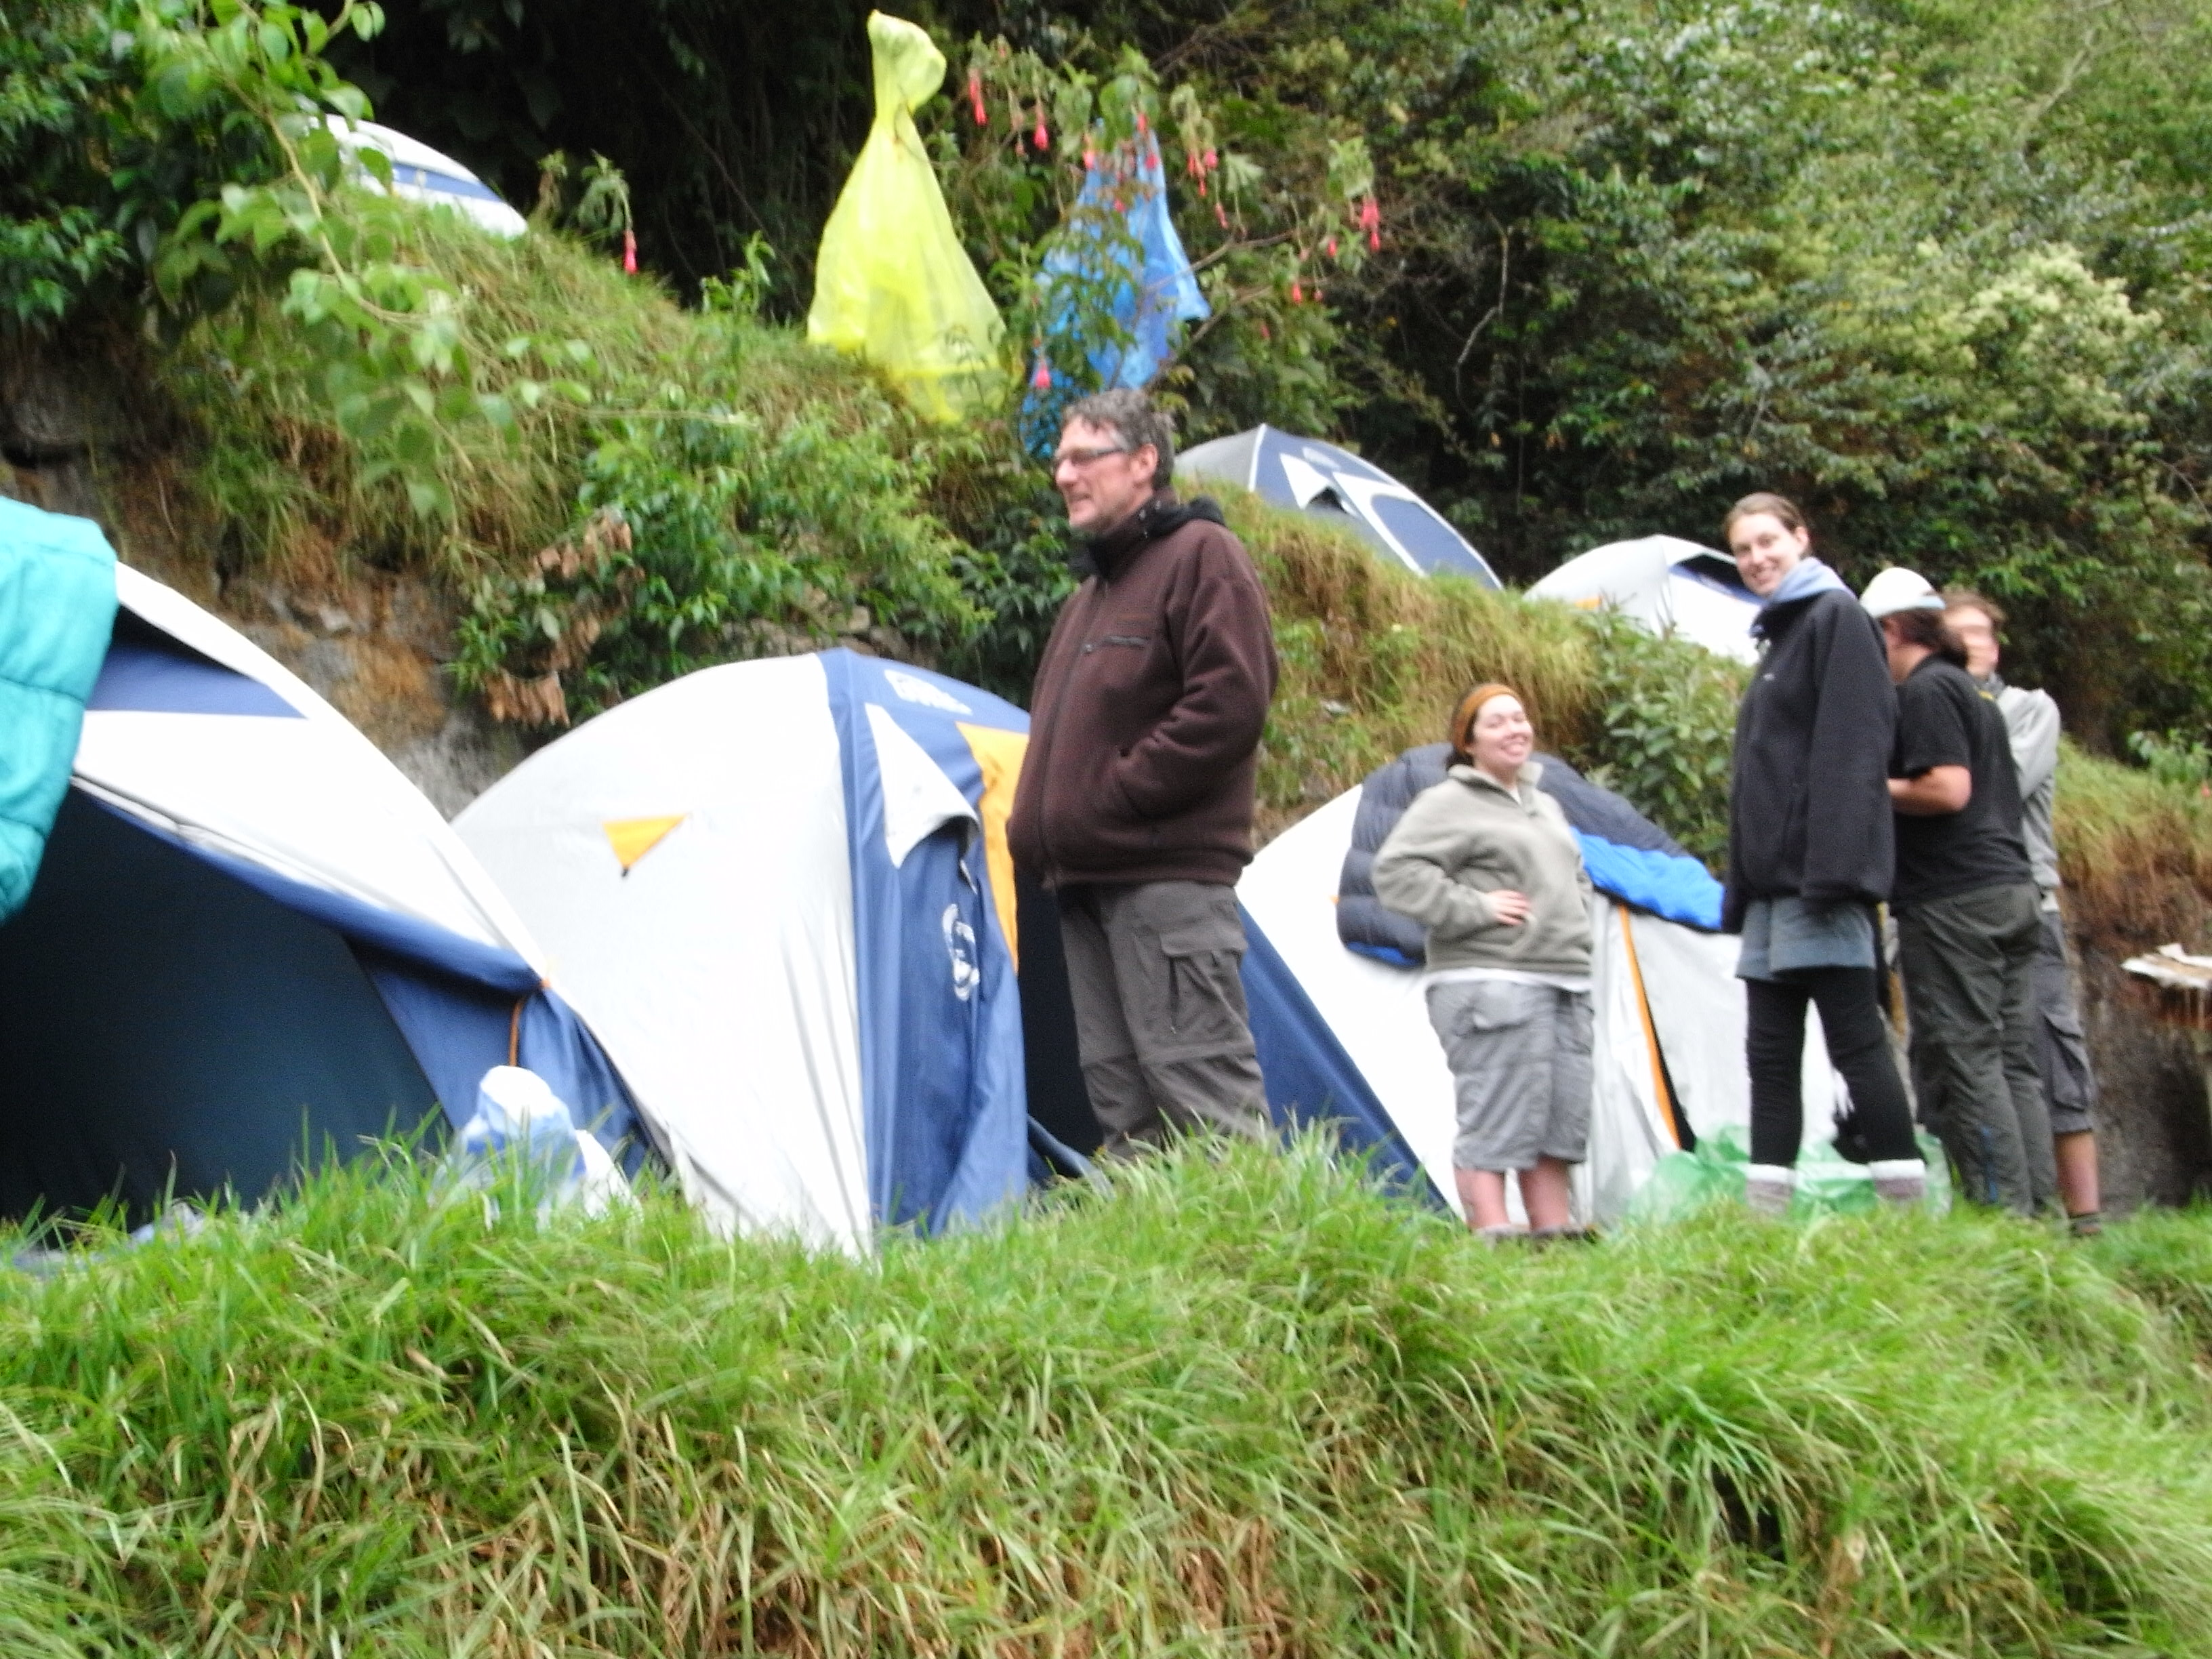 a brief break in the rain reveals the Gordon camping on an Andes terrace